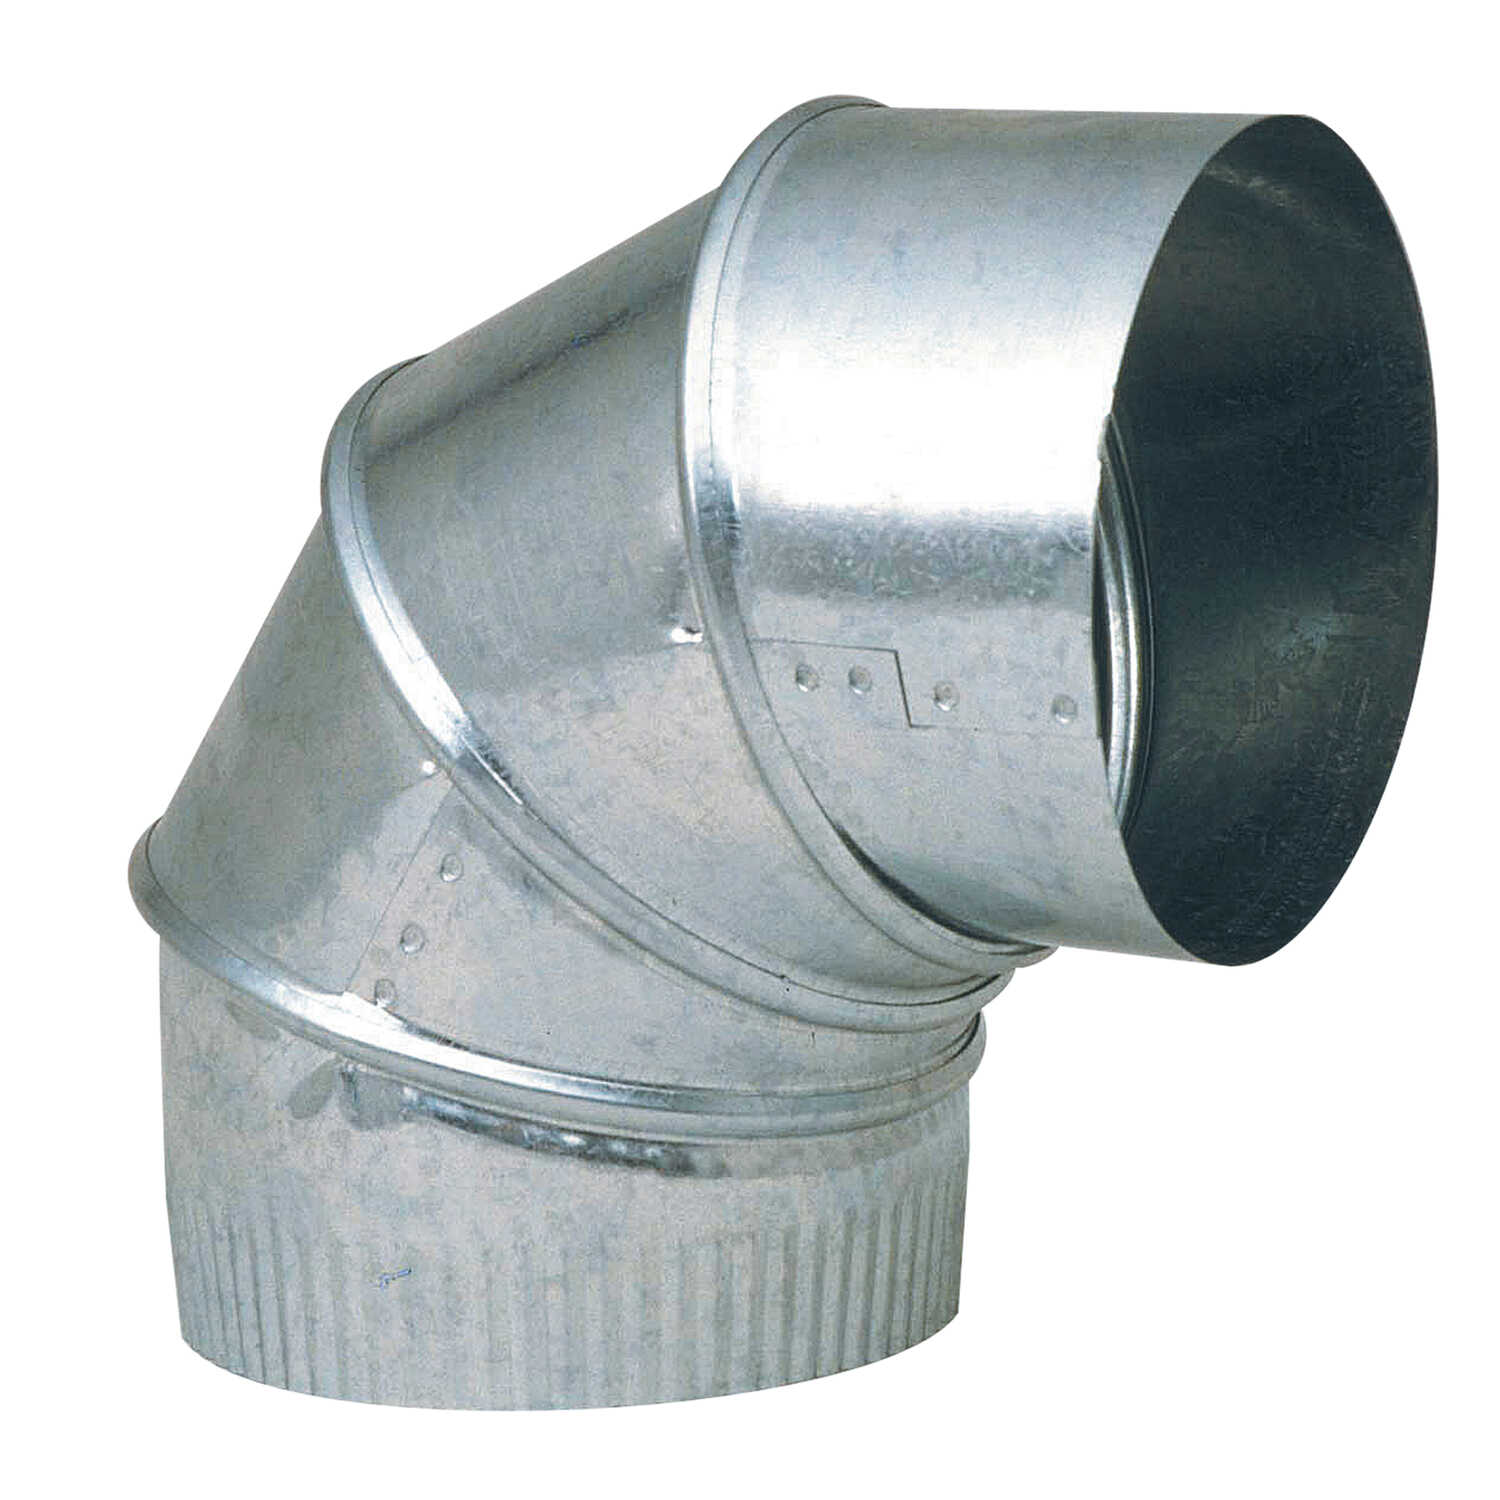 Imperial Manufacturing  4 in. Dia. x 4 in. Dia. Adjustable 90 deg. Galvanized Steel  Elbow Exhaust